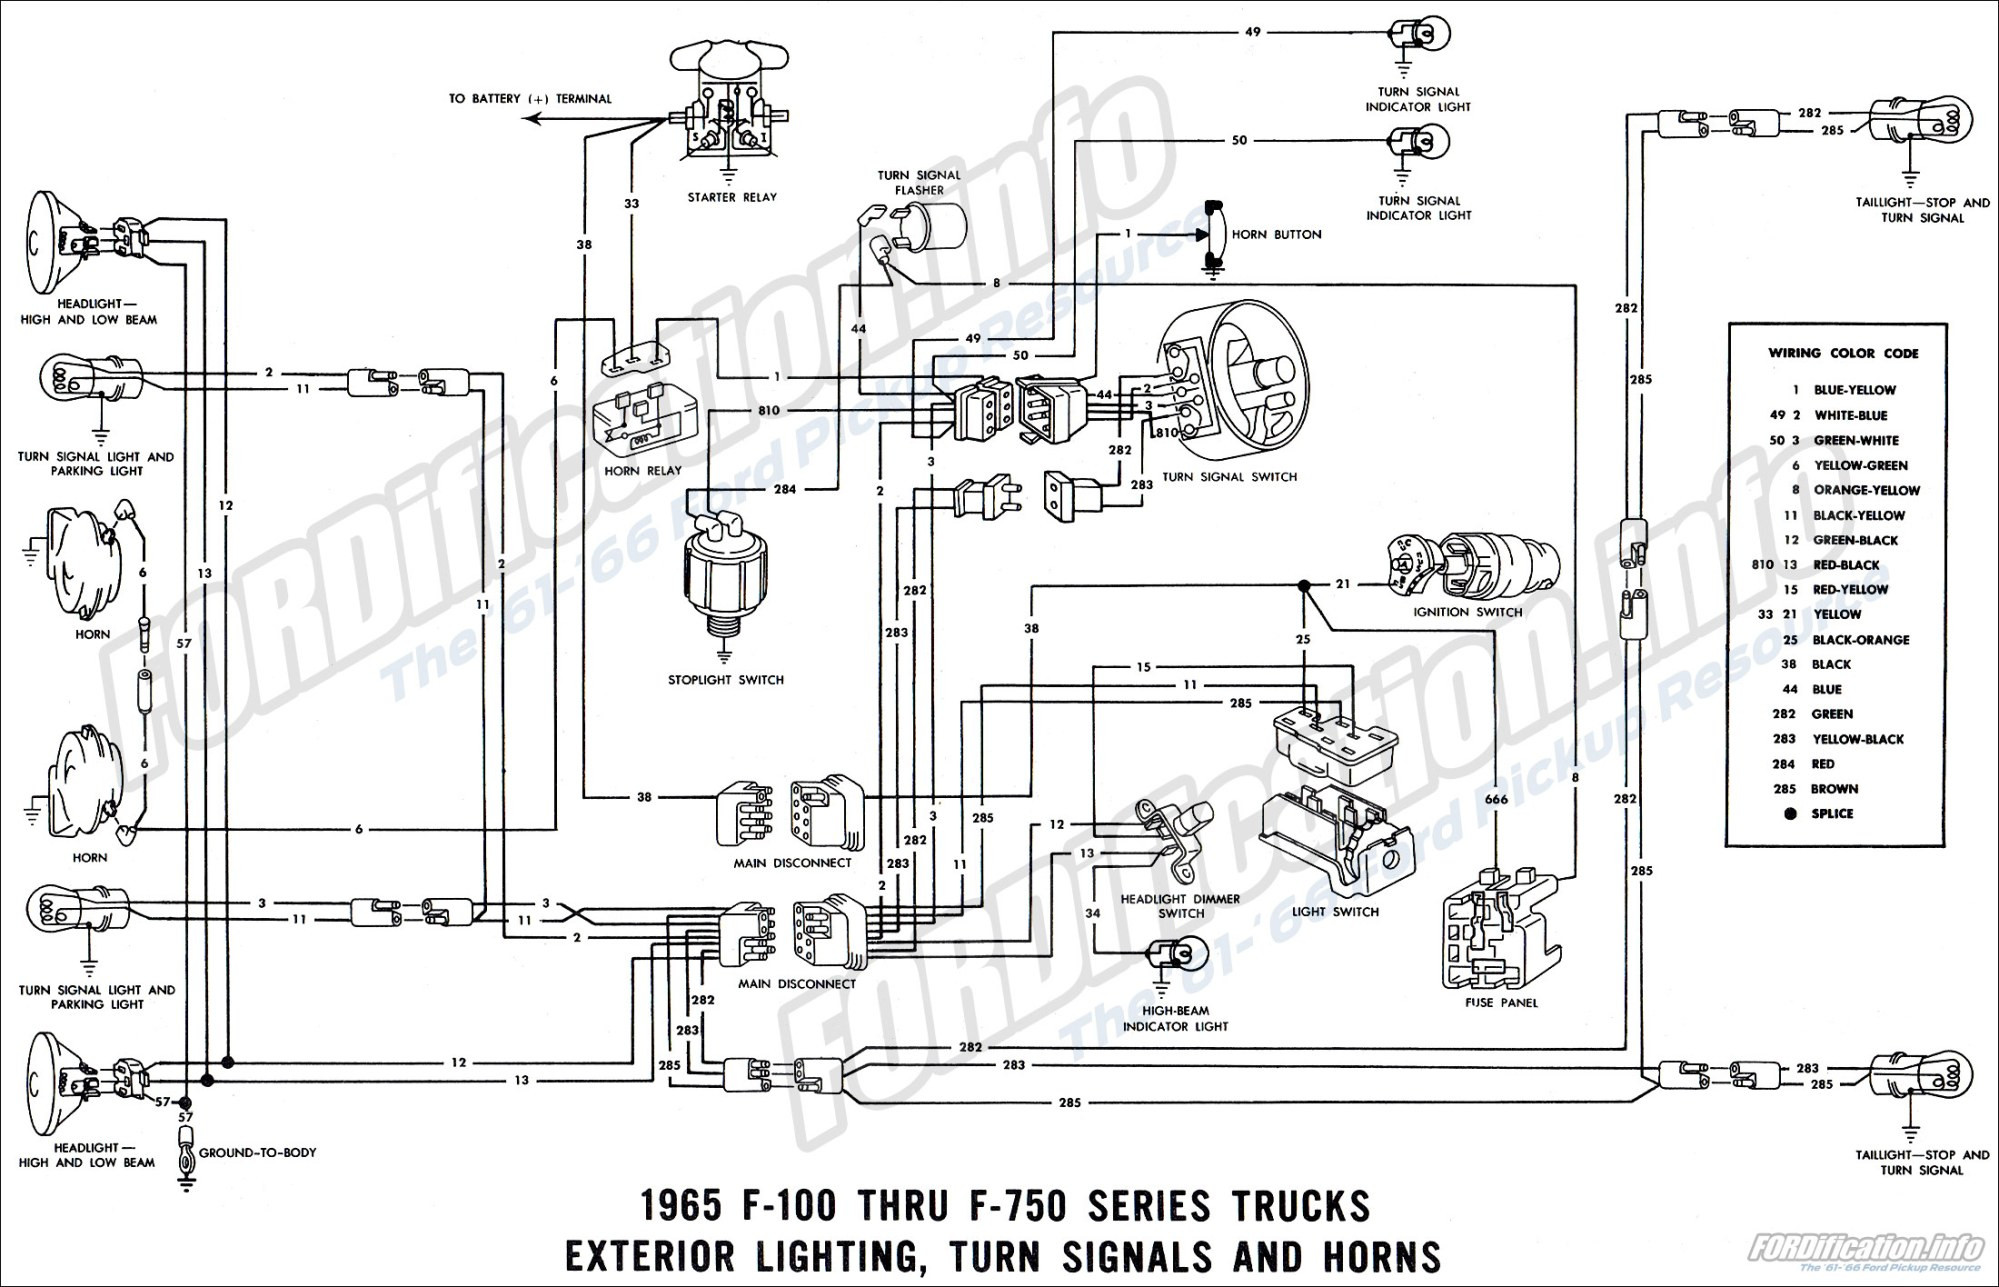 hight resolution of 65 ford f100 wiring diagram wiring diagram blog wiring diagram for 65 ford f100 1965 ford